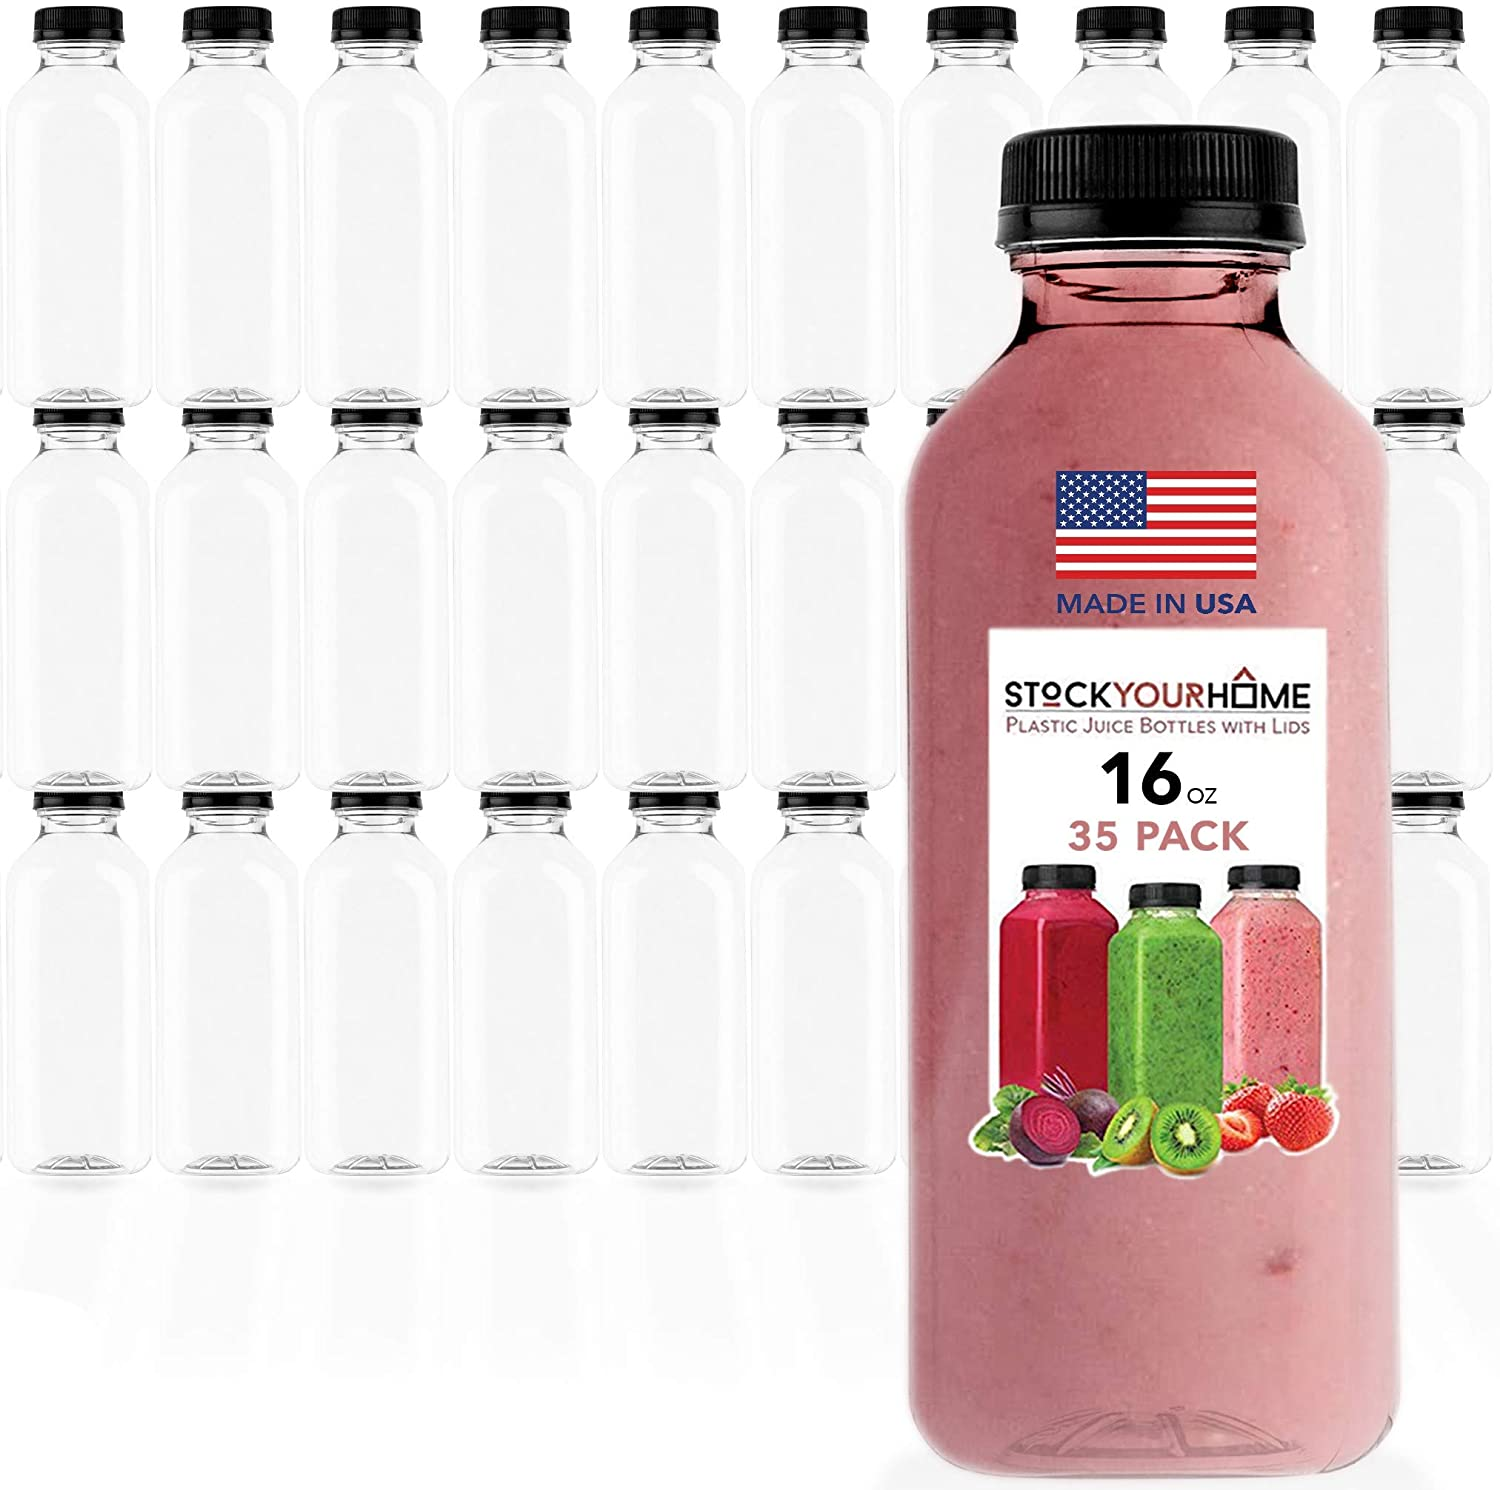 Plastic Juice Bottles with Lids, Juice Drink Containers with Caps for Juicing Smoothie Drinking Cold Beverages, 16 Oz, 35 Count